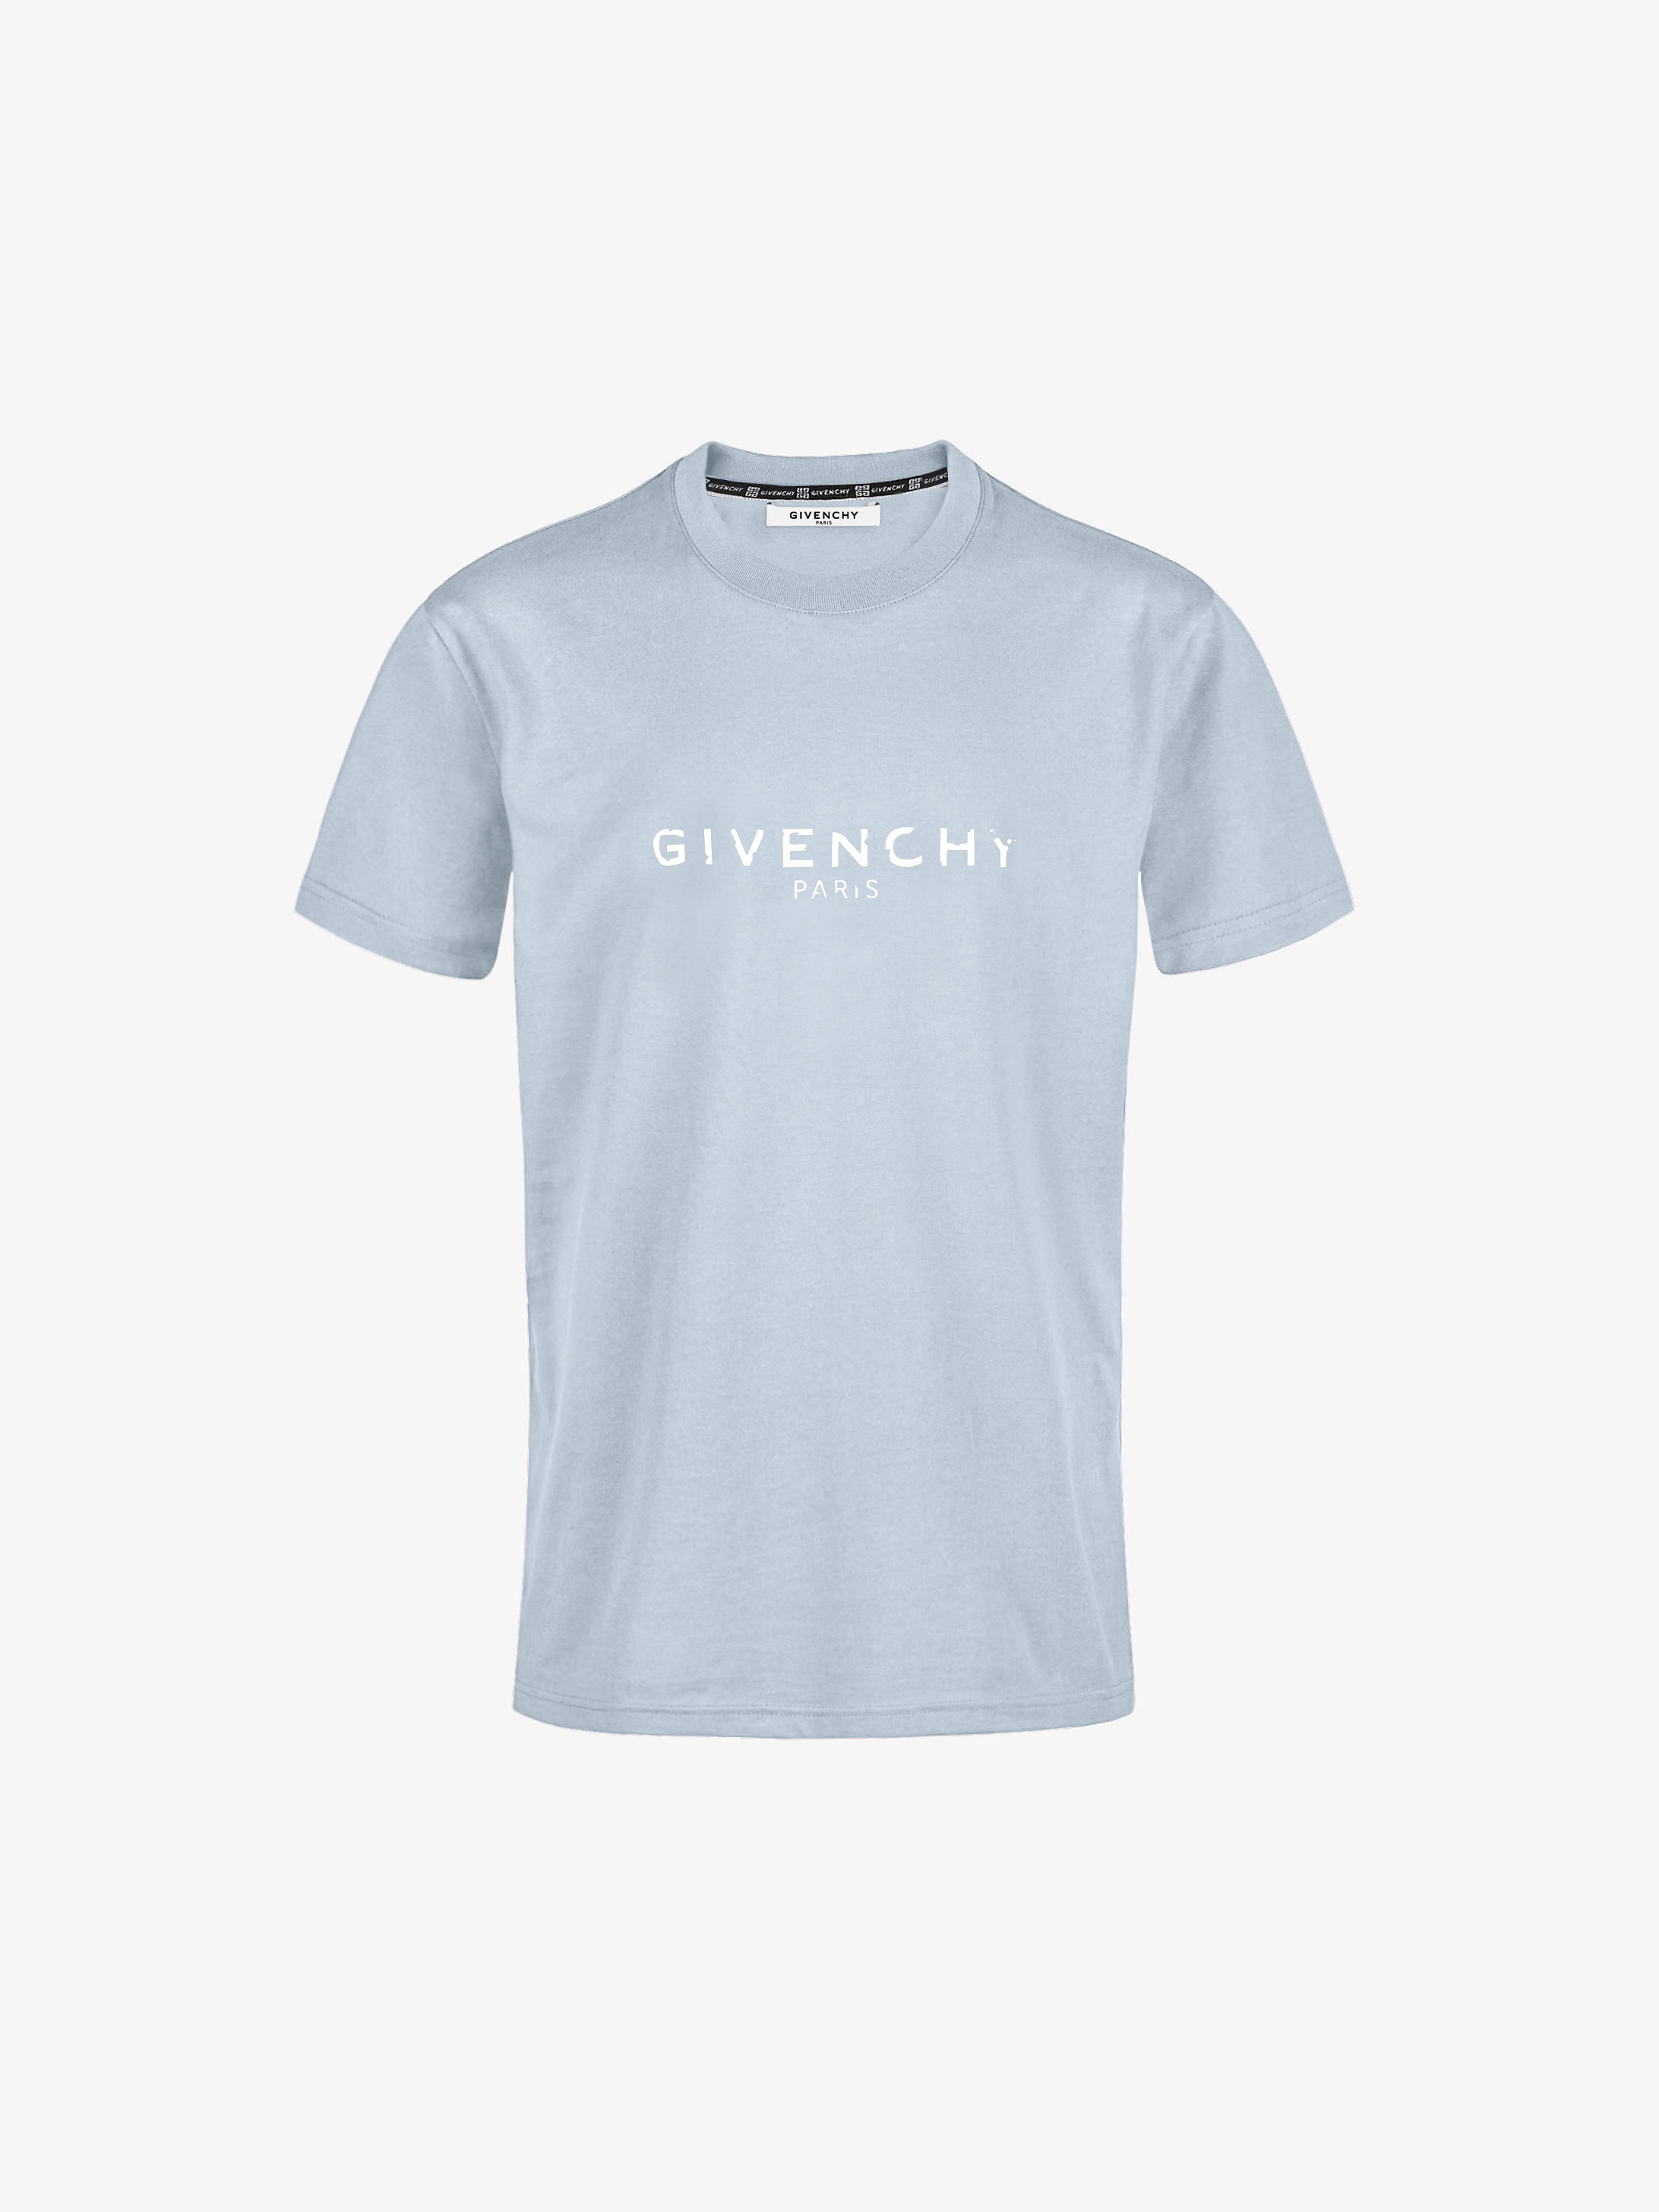 GIVENCHY PARIS vintage slim fit T-shirt